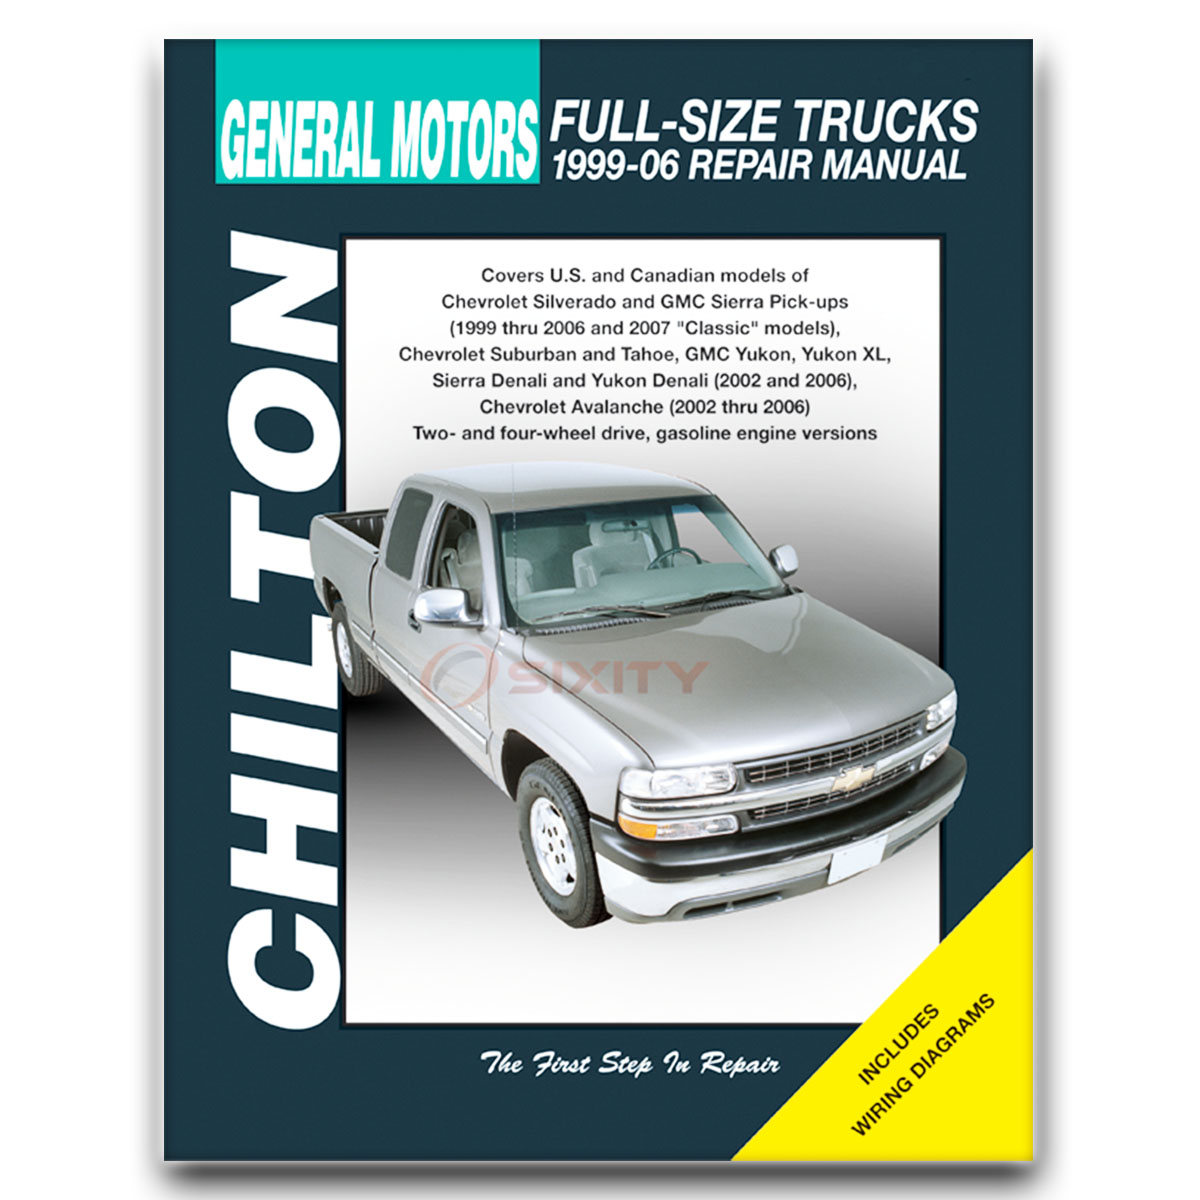 chevy silverado 1500 chilton repair manual ls classic z71 ss wt rh ebay com Ford Truck Chilton Repair Manual Heavy Truck Chilton Manuals